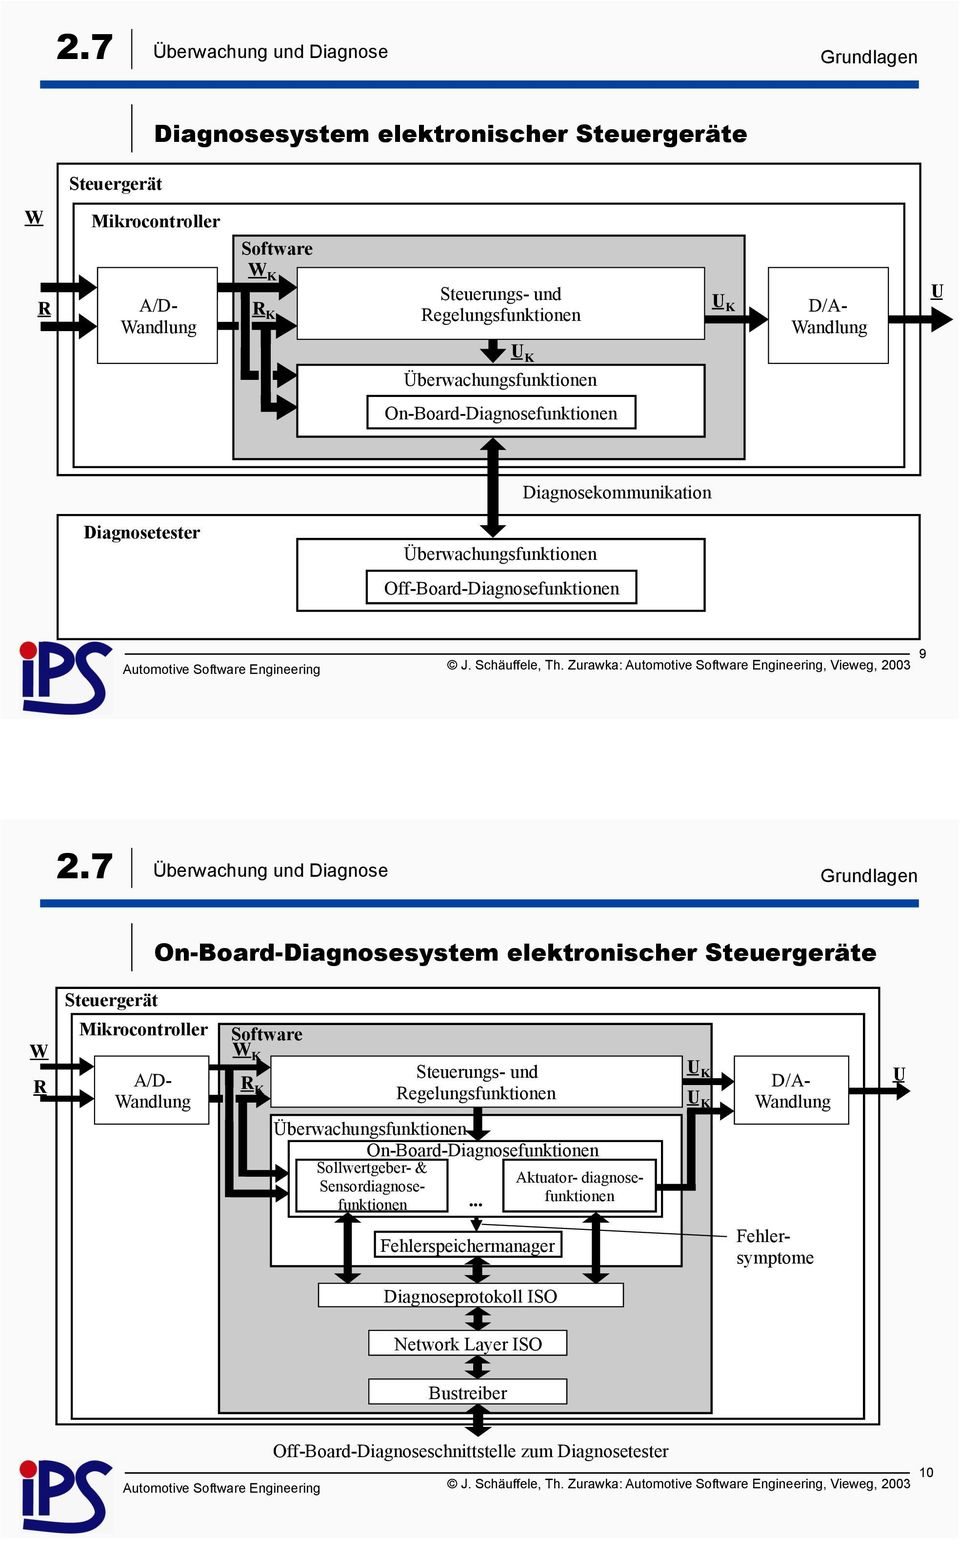 Zurawka:, Vieweg, 2003 On-Board-Diagnosesystem elektronischer Steuergeräte Steuergerät andlung K K egelungsfunktionen On-Board-Diagnosefunktionen